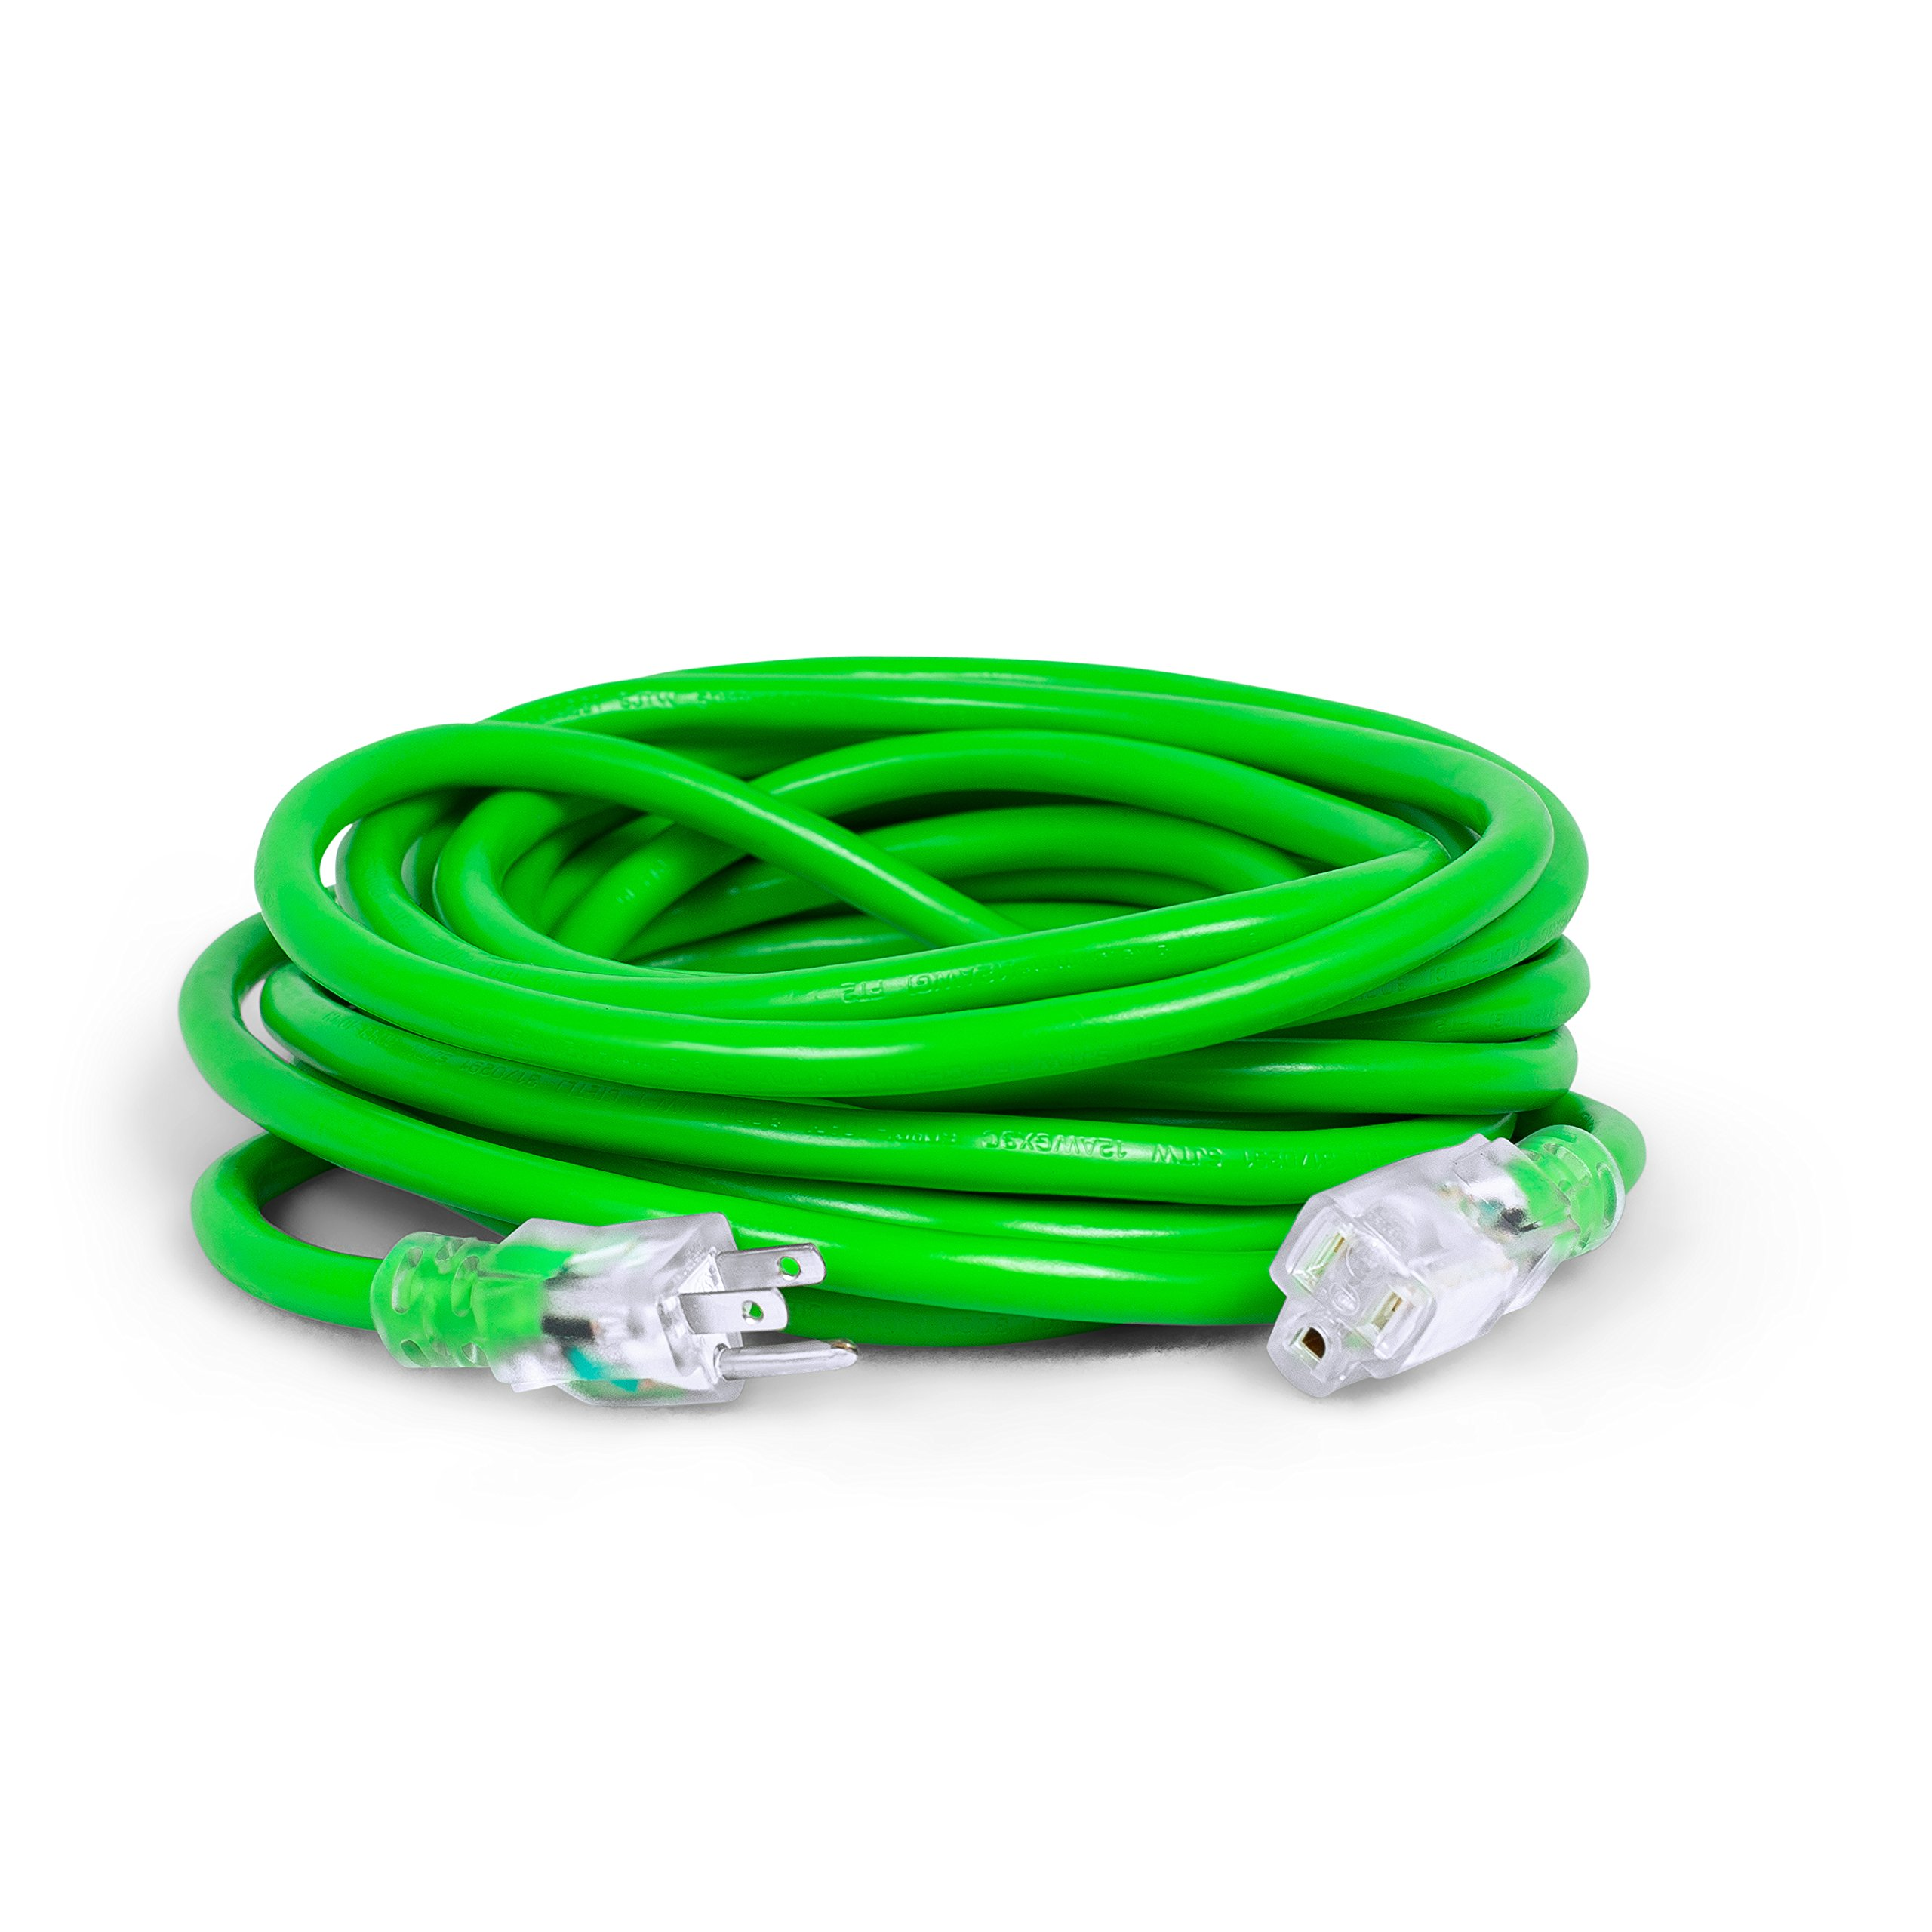 Internet's Best 25 FT Power Extension Cord with LED Lighted Plugs | 12 AWG (Gauge - 12/3) Heavy Duty Outdoor/Indoor Power Extension Cable Cord | NEMA 5-15 R & 5-15P - SJTW | Green